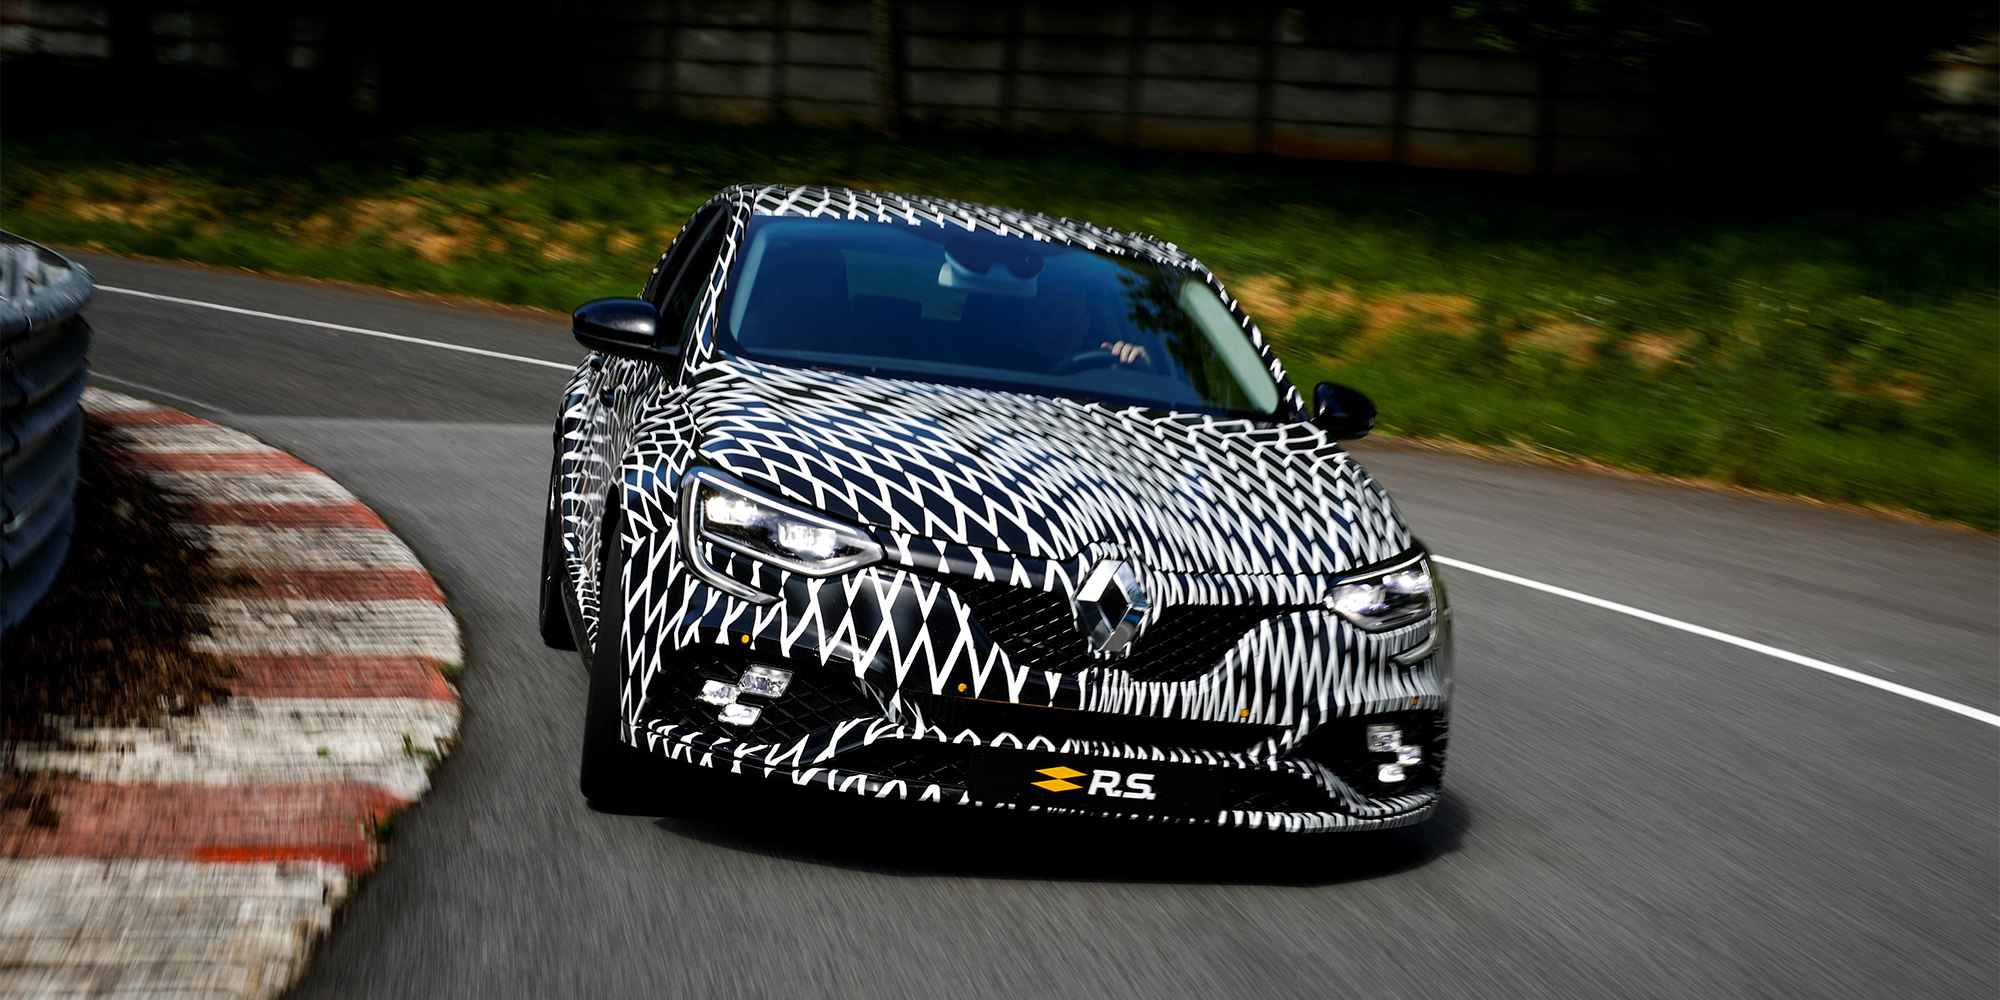 https://blog.renault.de/wp-content/uploads/2017/05/header-megane-rs-f1.jpg